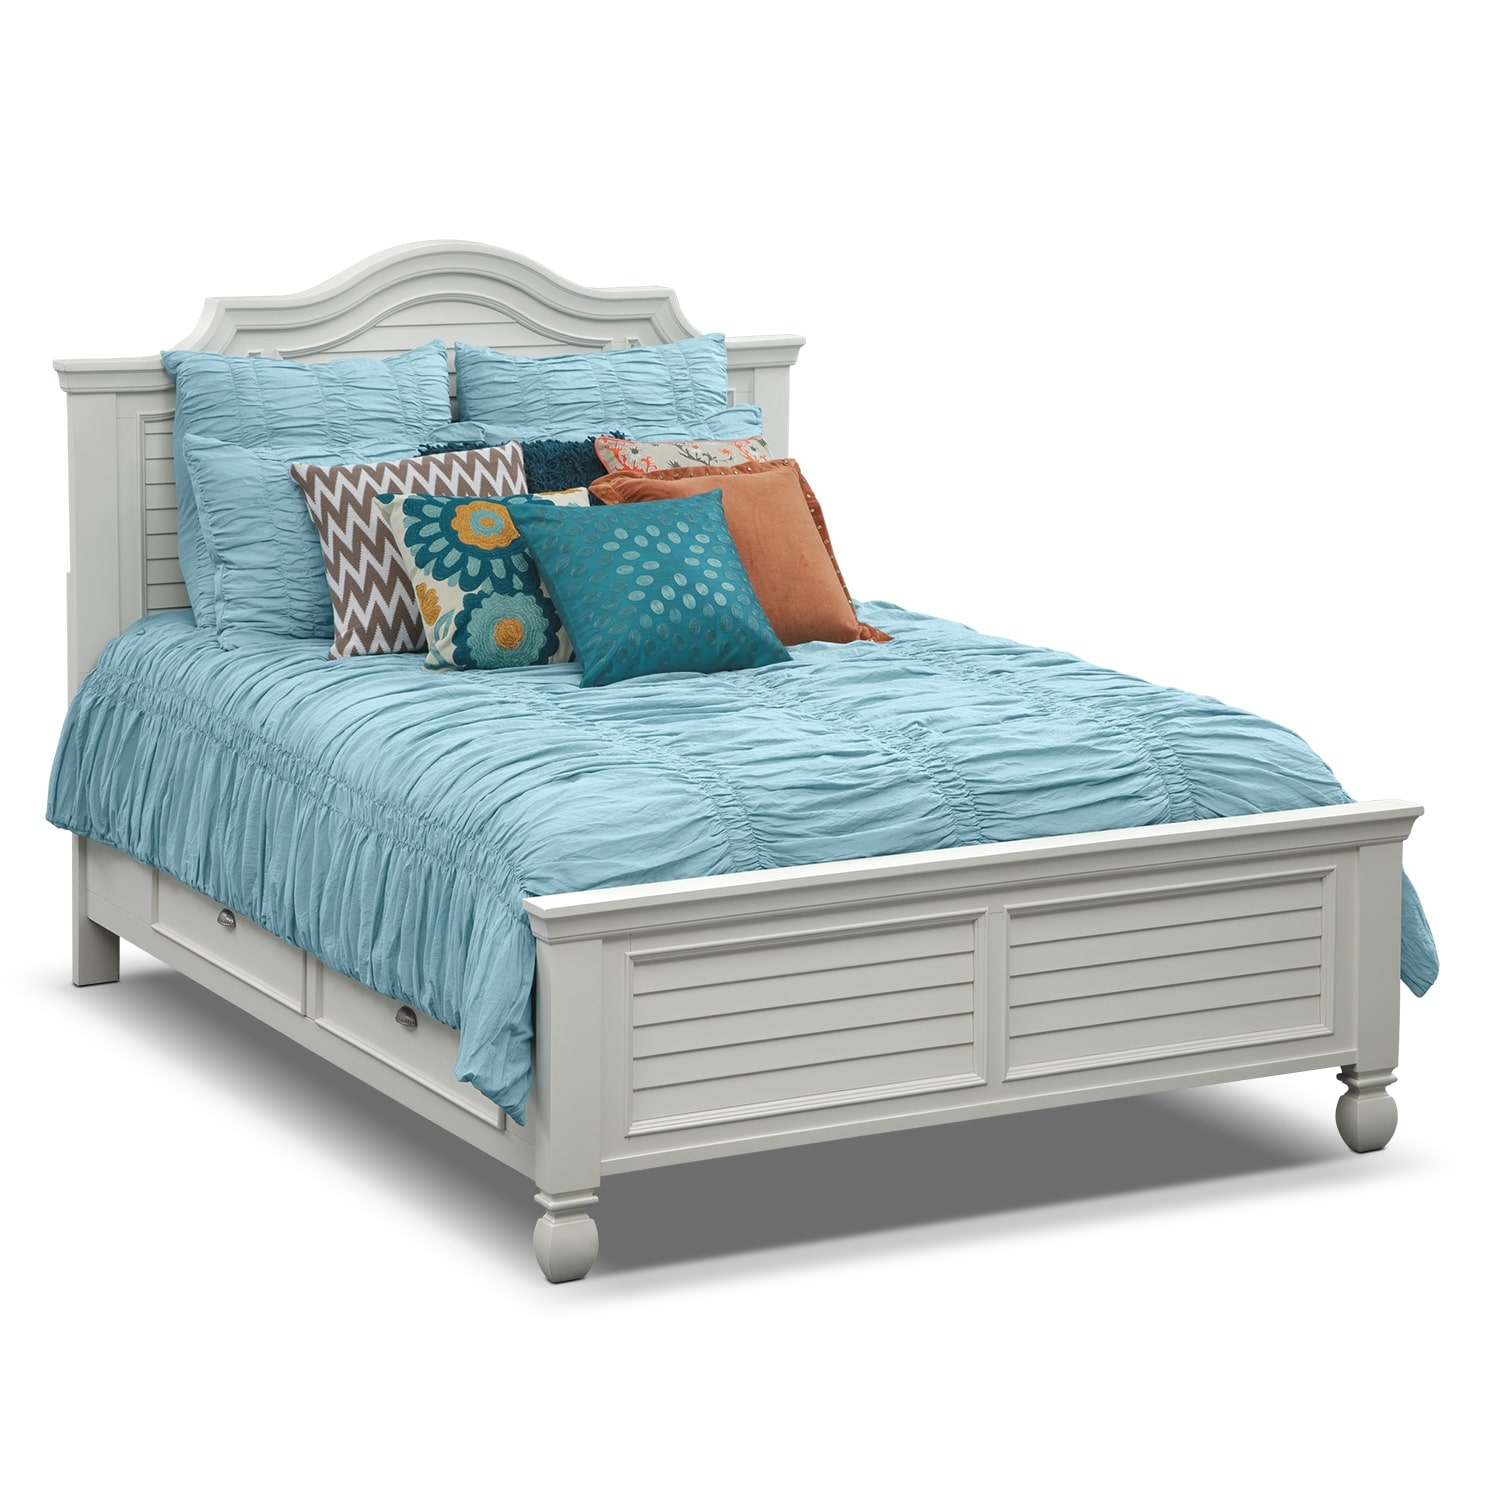 Accent and Occasional Furniture - Gillian II King Bedding Set